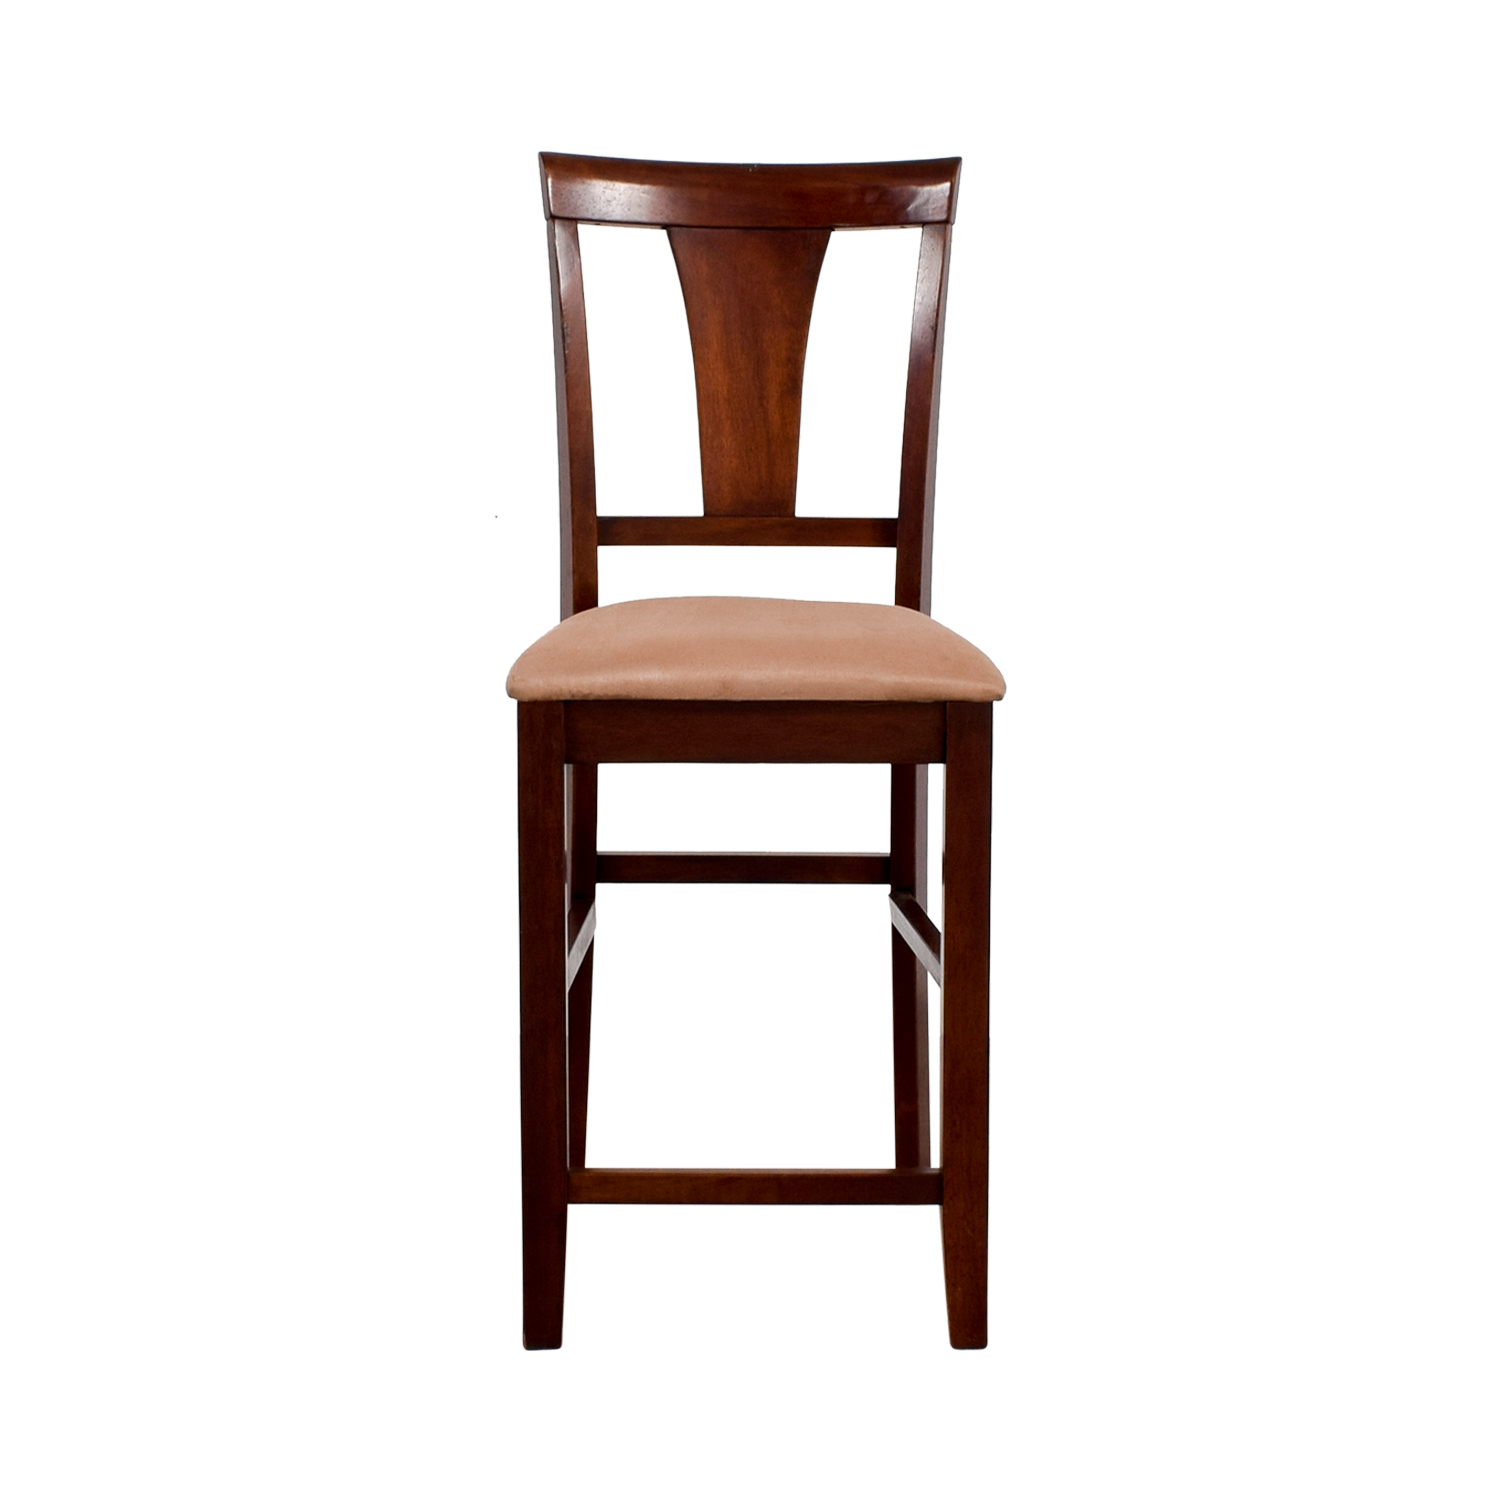 Wondrous 90 Off Light Cherry Wood Counter Height Chair With Padded Seat Chairs Machost Co Dining Chair Design Ideas Machostcouk